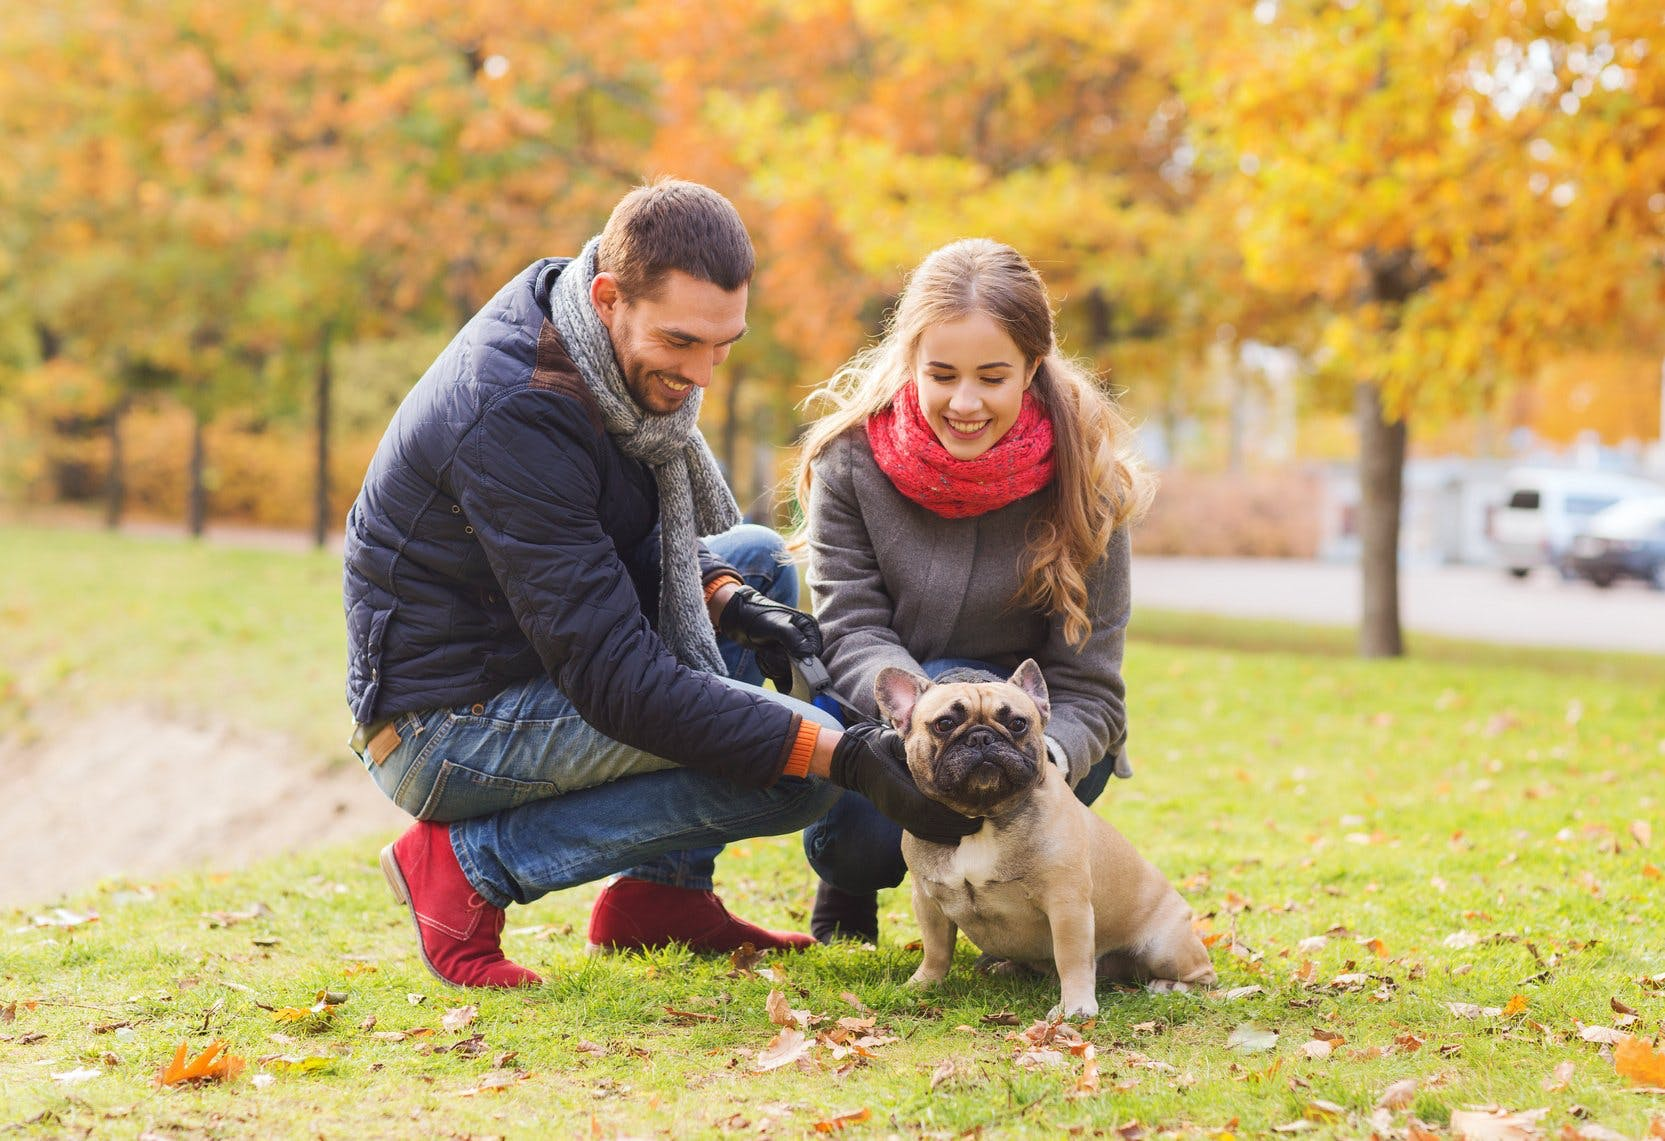 Dog friendly dating sites